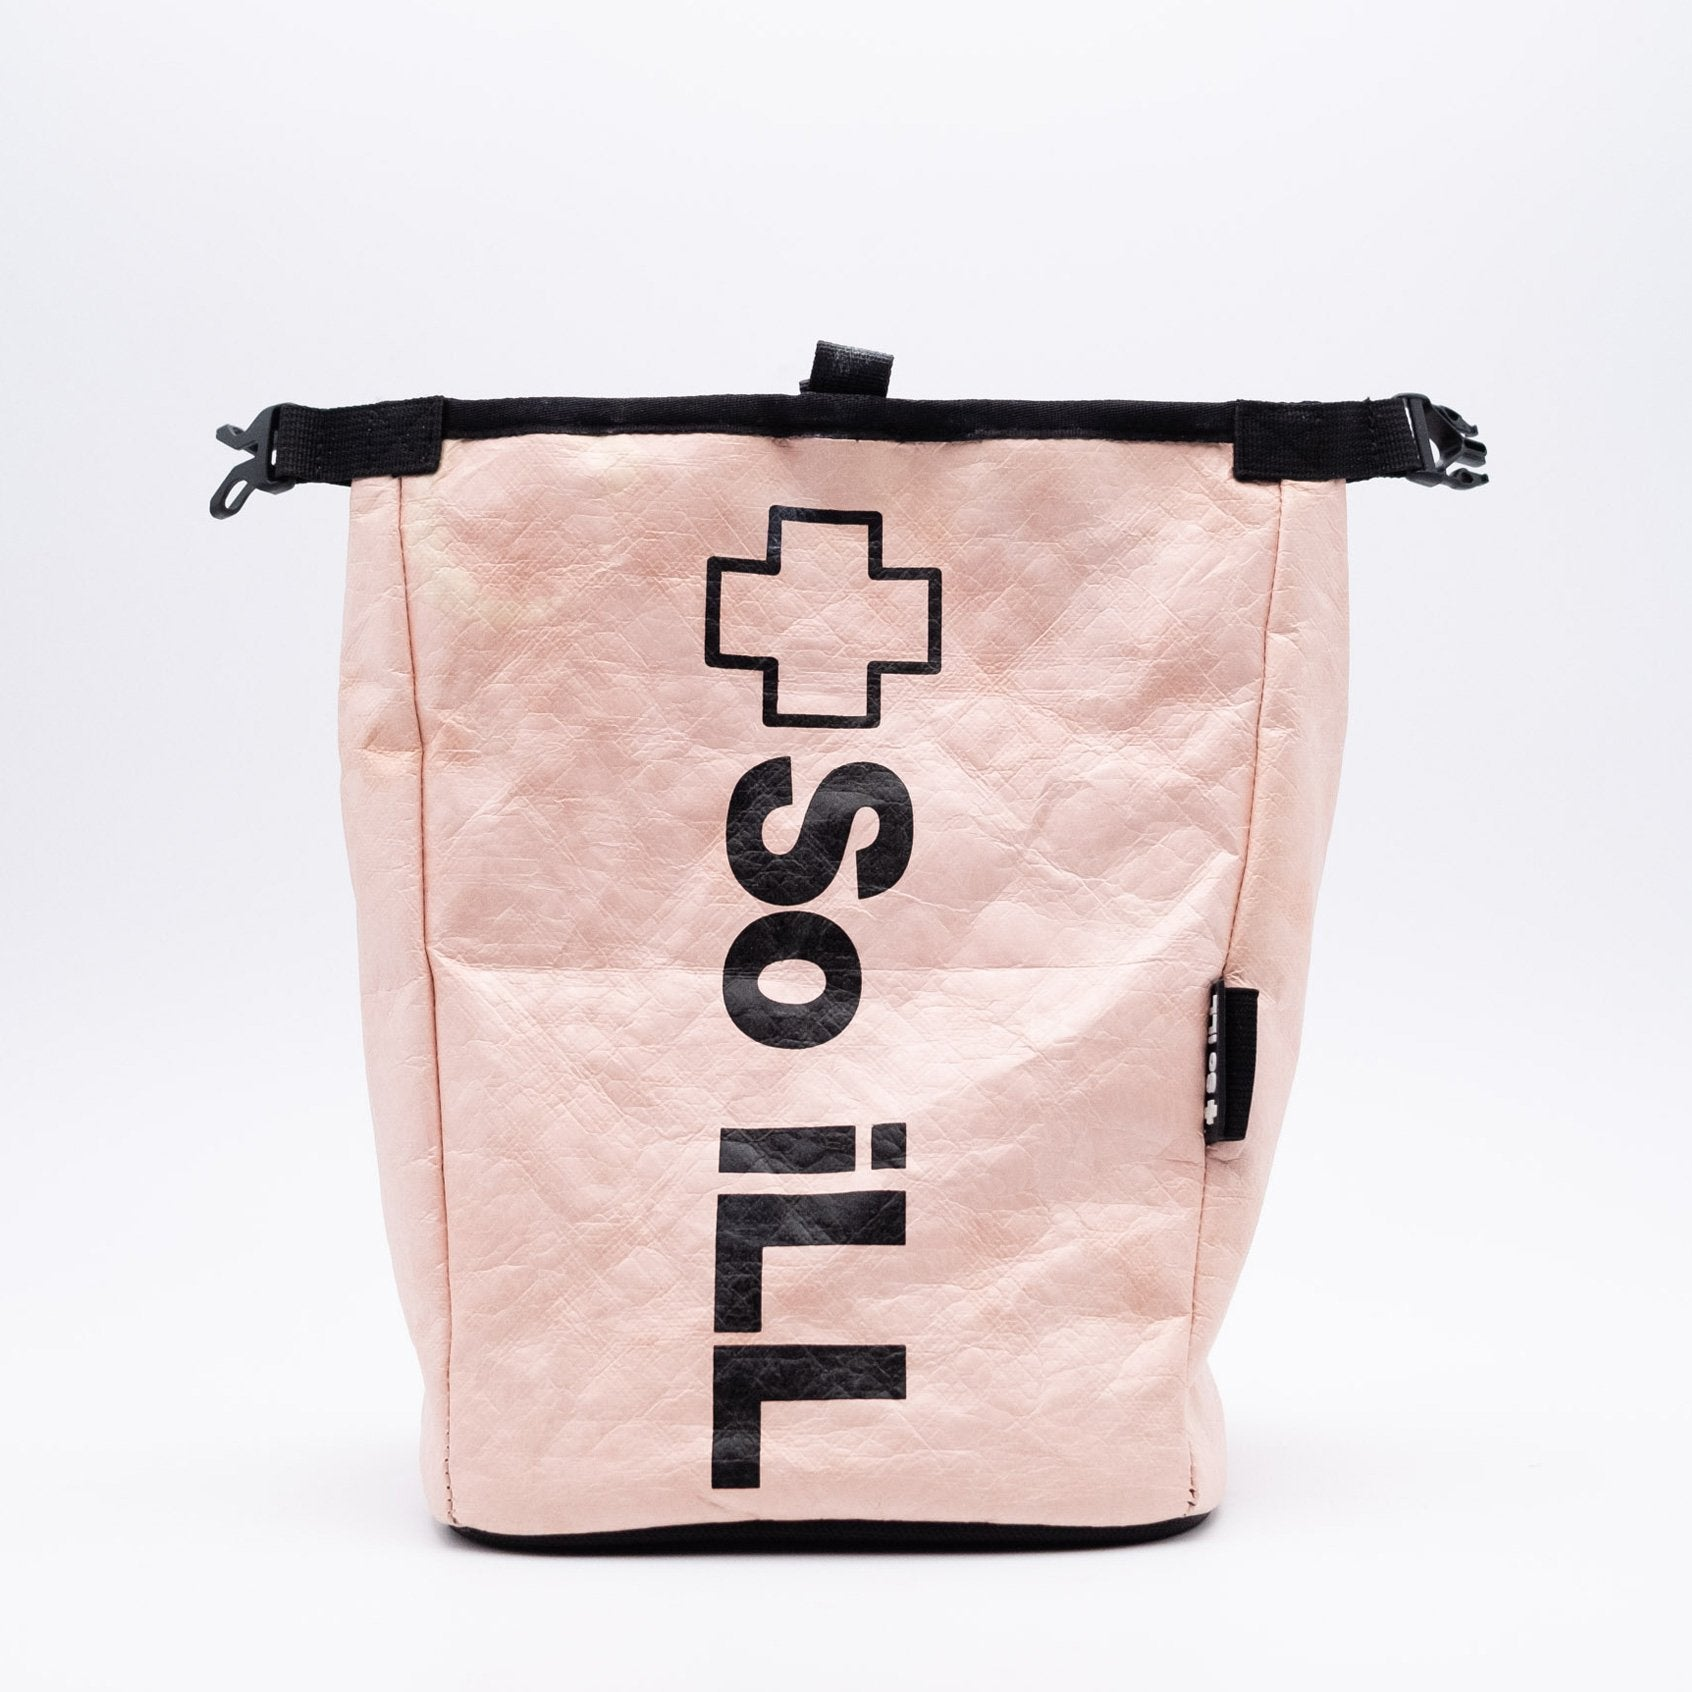 So iLL Tyvek Rolldown Chalk Bucket - Urban Pink Bags